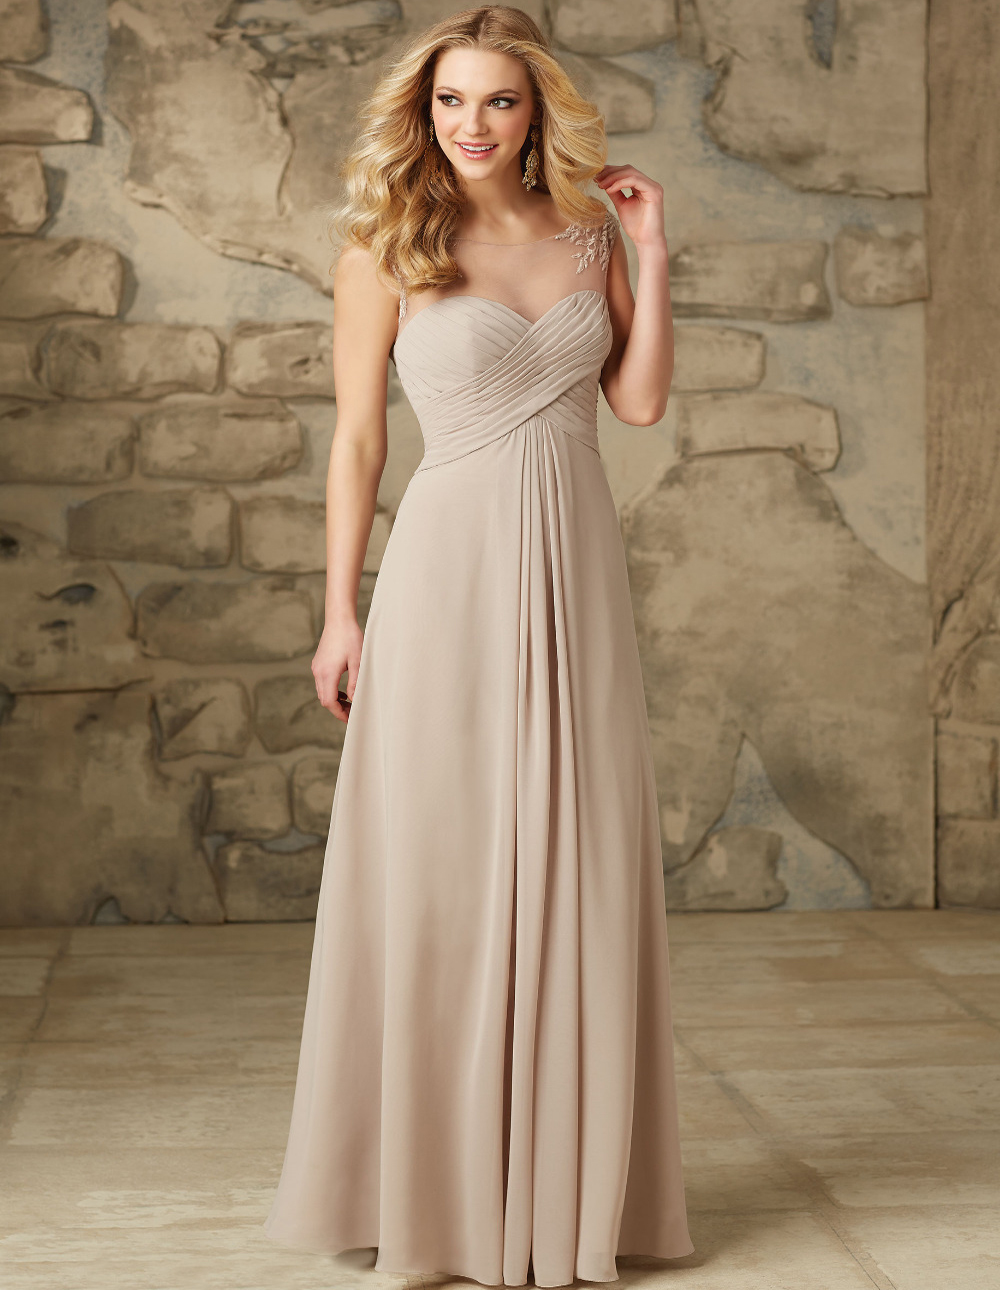 Long chiffon chocolate bridesmaid dresses 2015 sexy for Plus size wedding party dresses